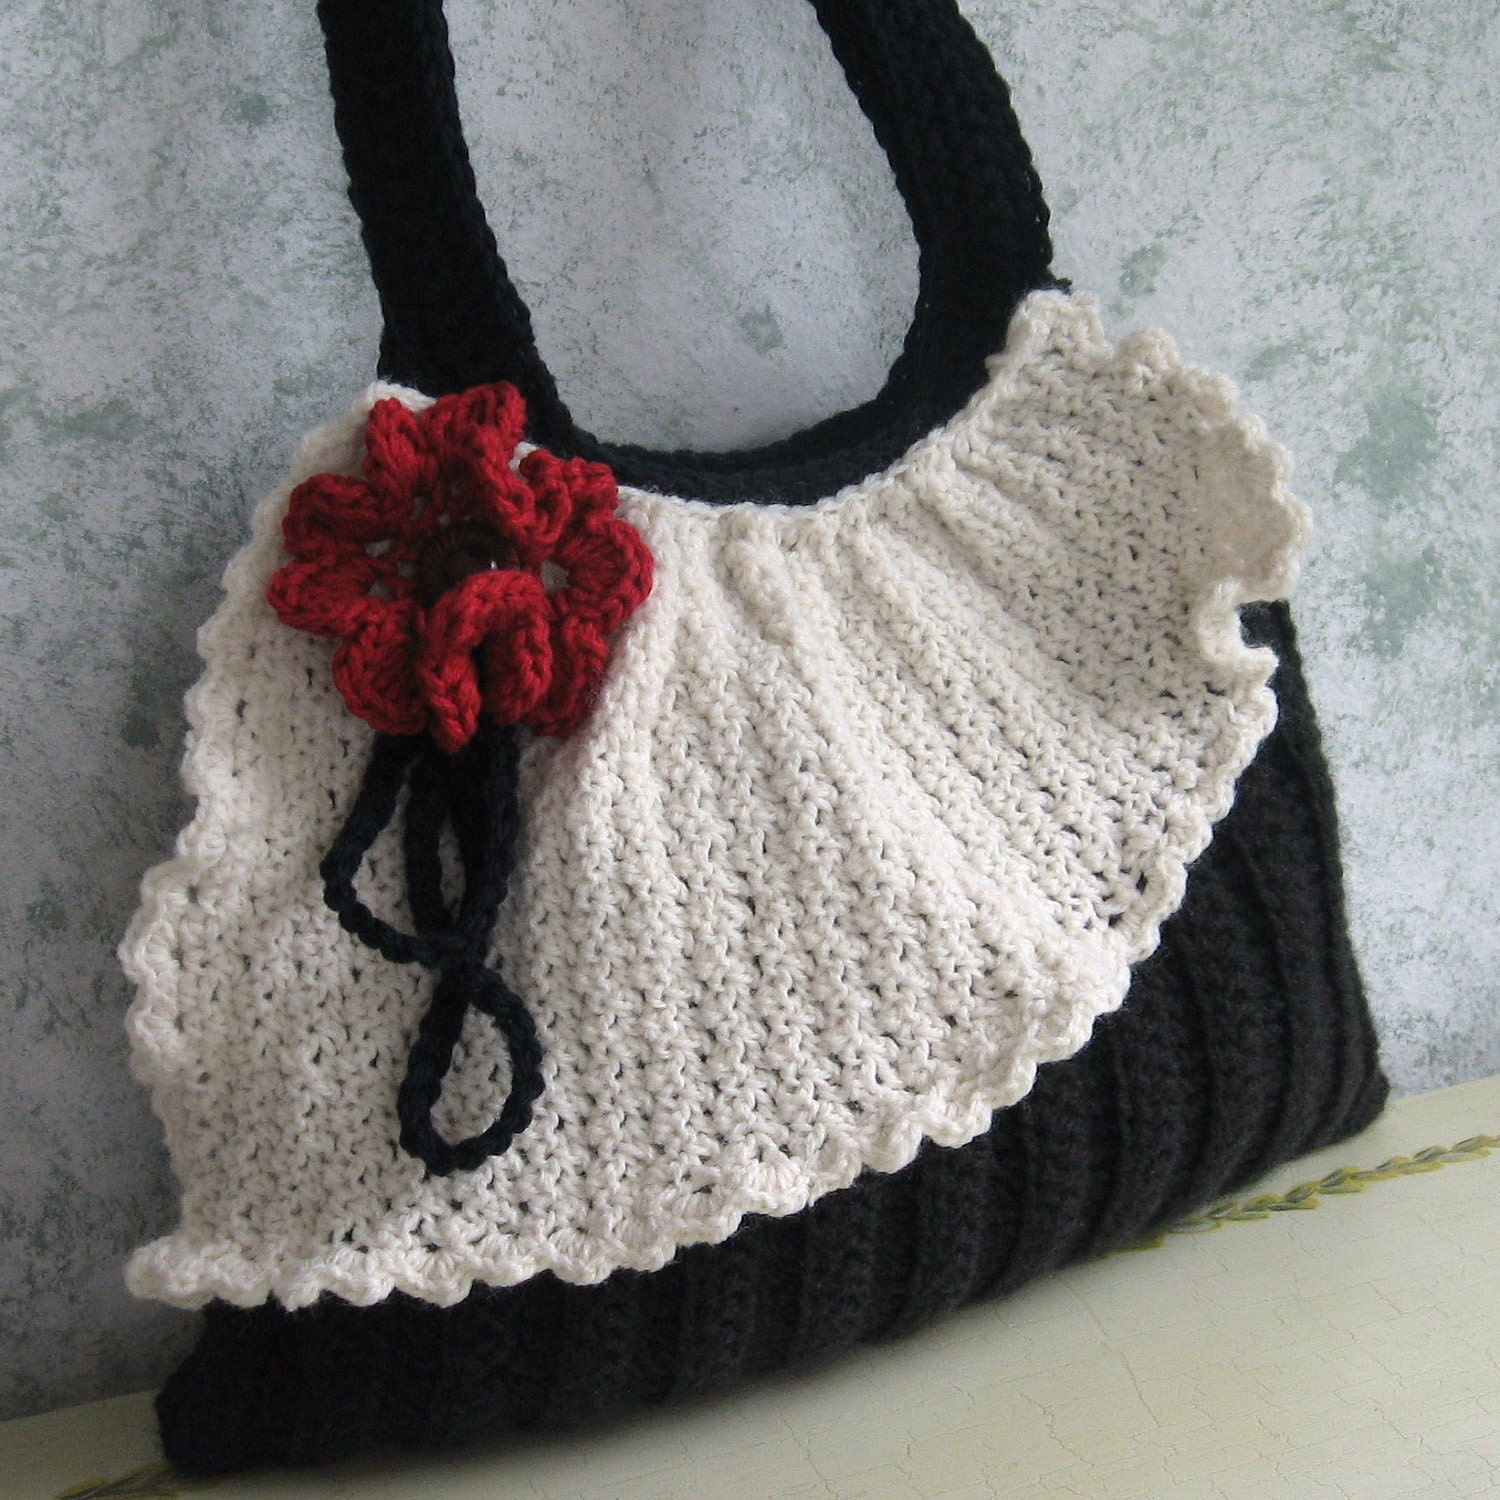 Crochet Backpack Purse : Crochet Purse Pattern Pleated Bag With Drape And by kalliedesigns